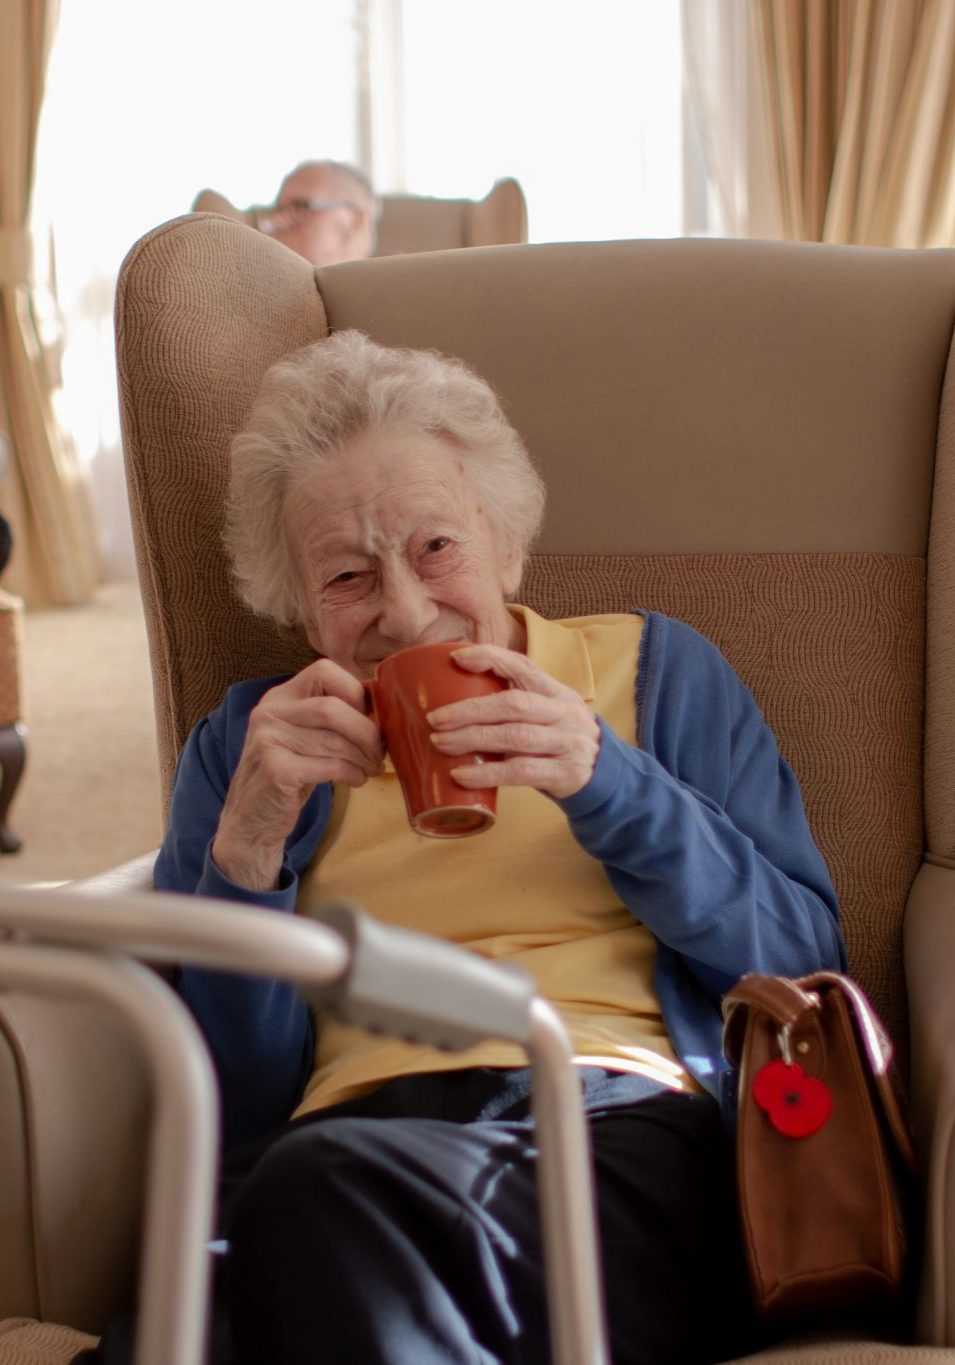 craig healthcare residents lifestyle photography hannah layford drinking tea